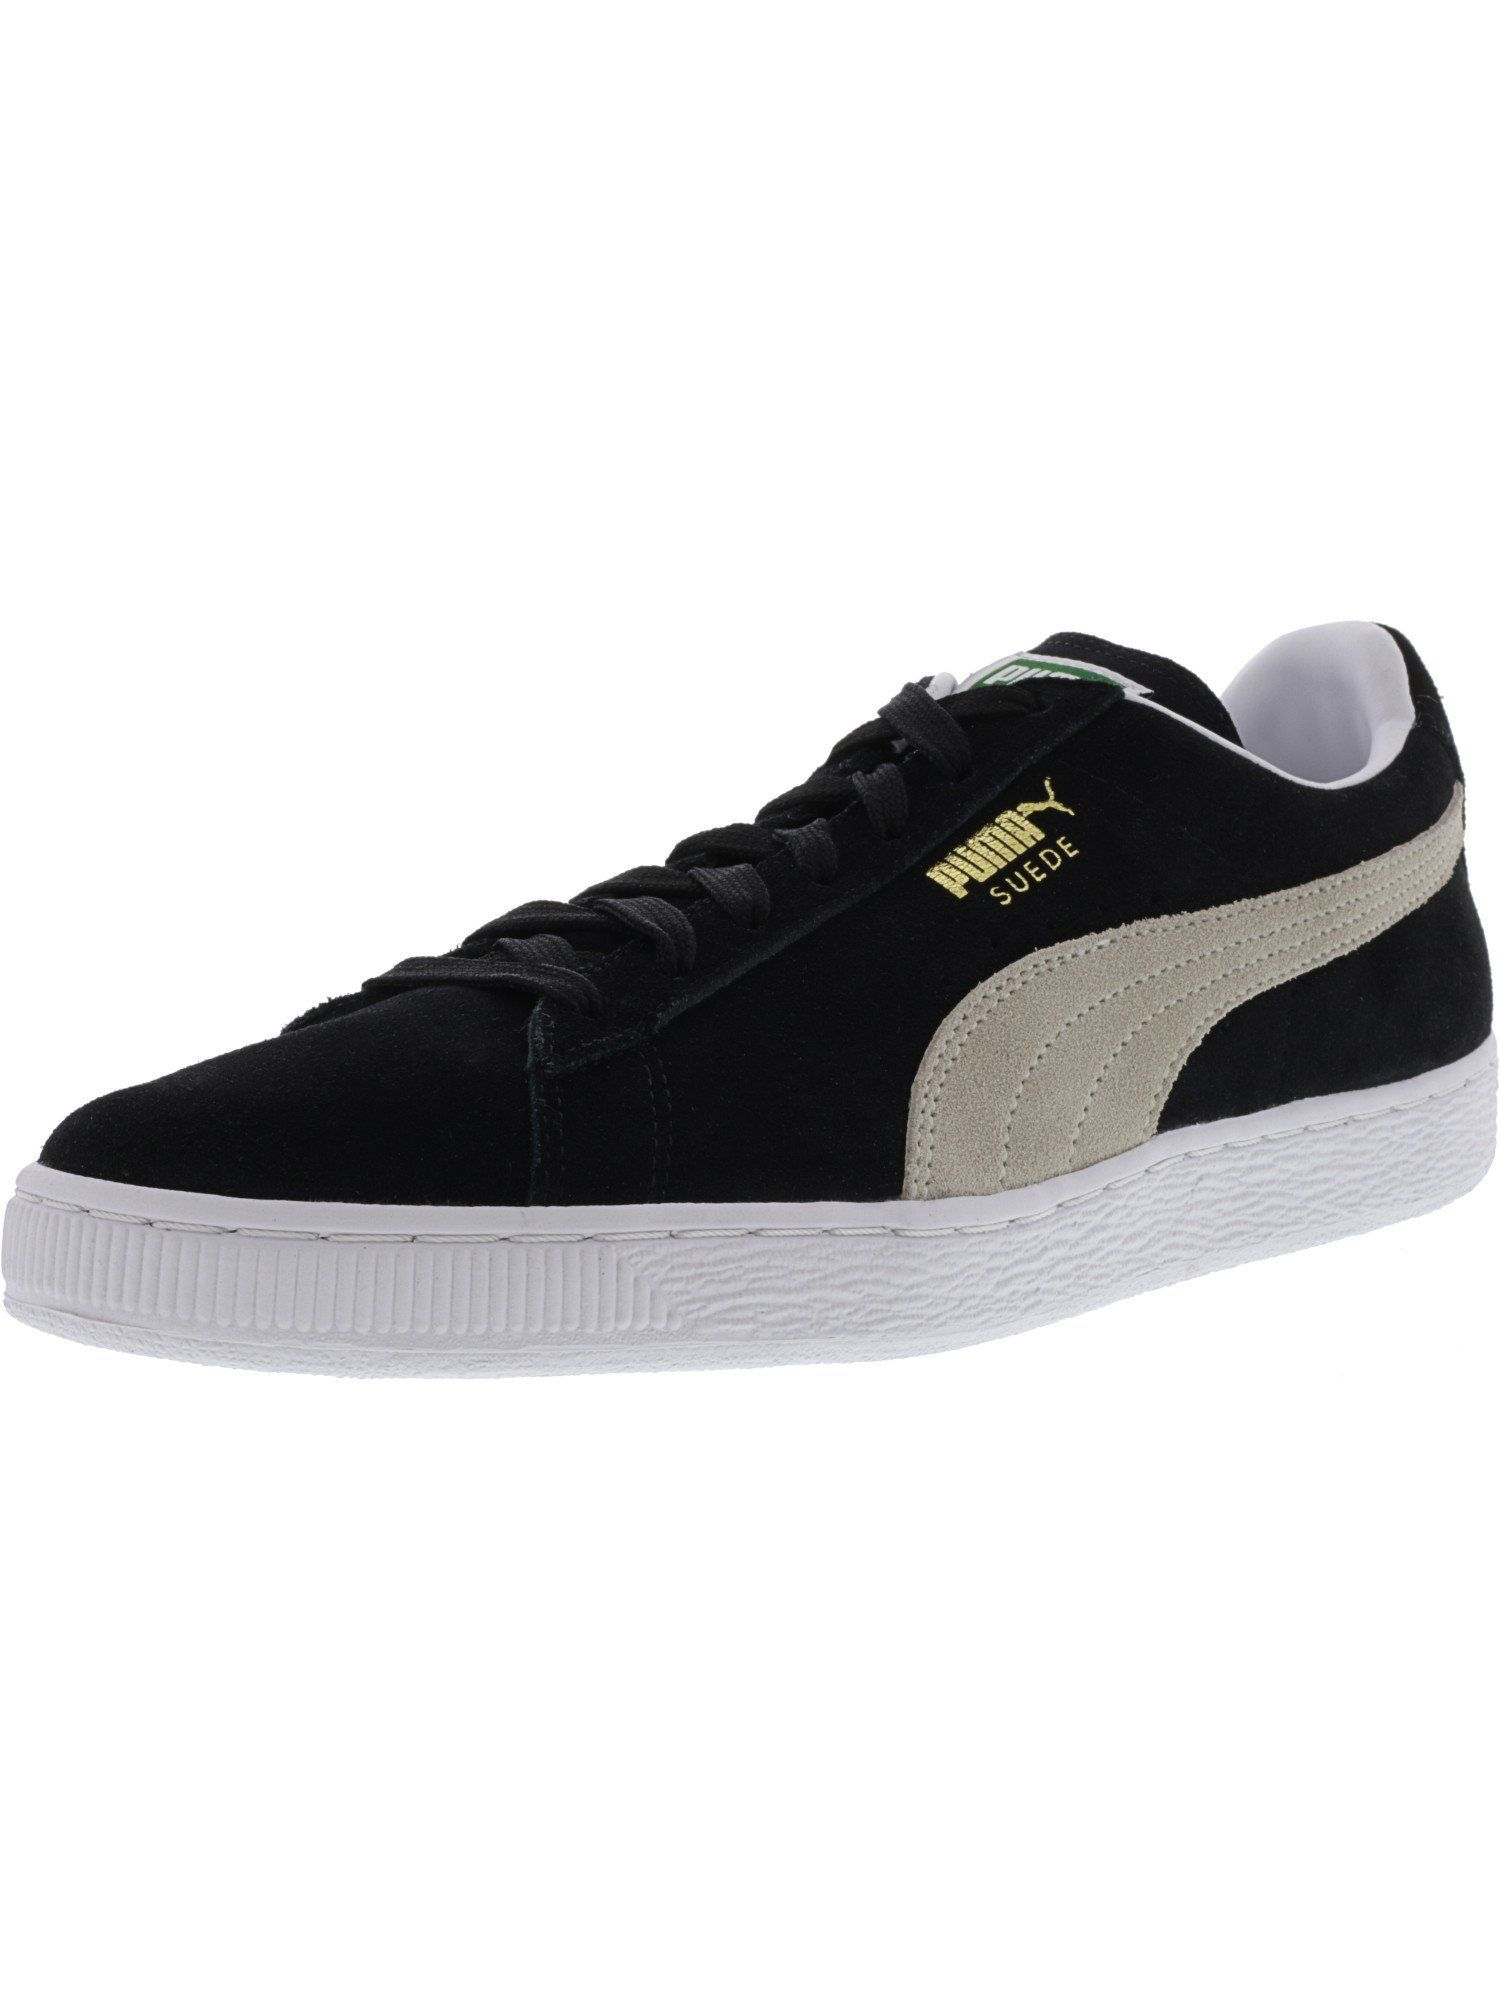 Ankle sneakers, Puma mens, Formal shoes